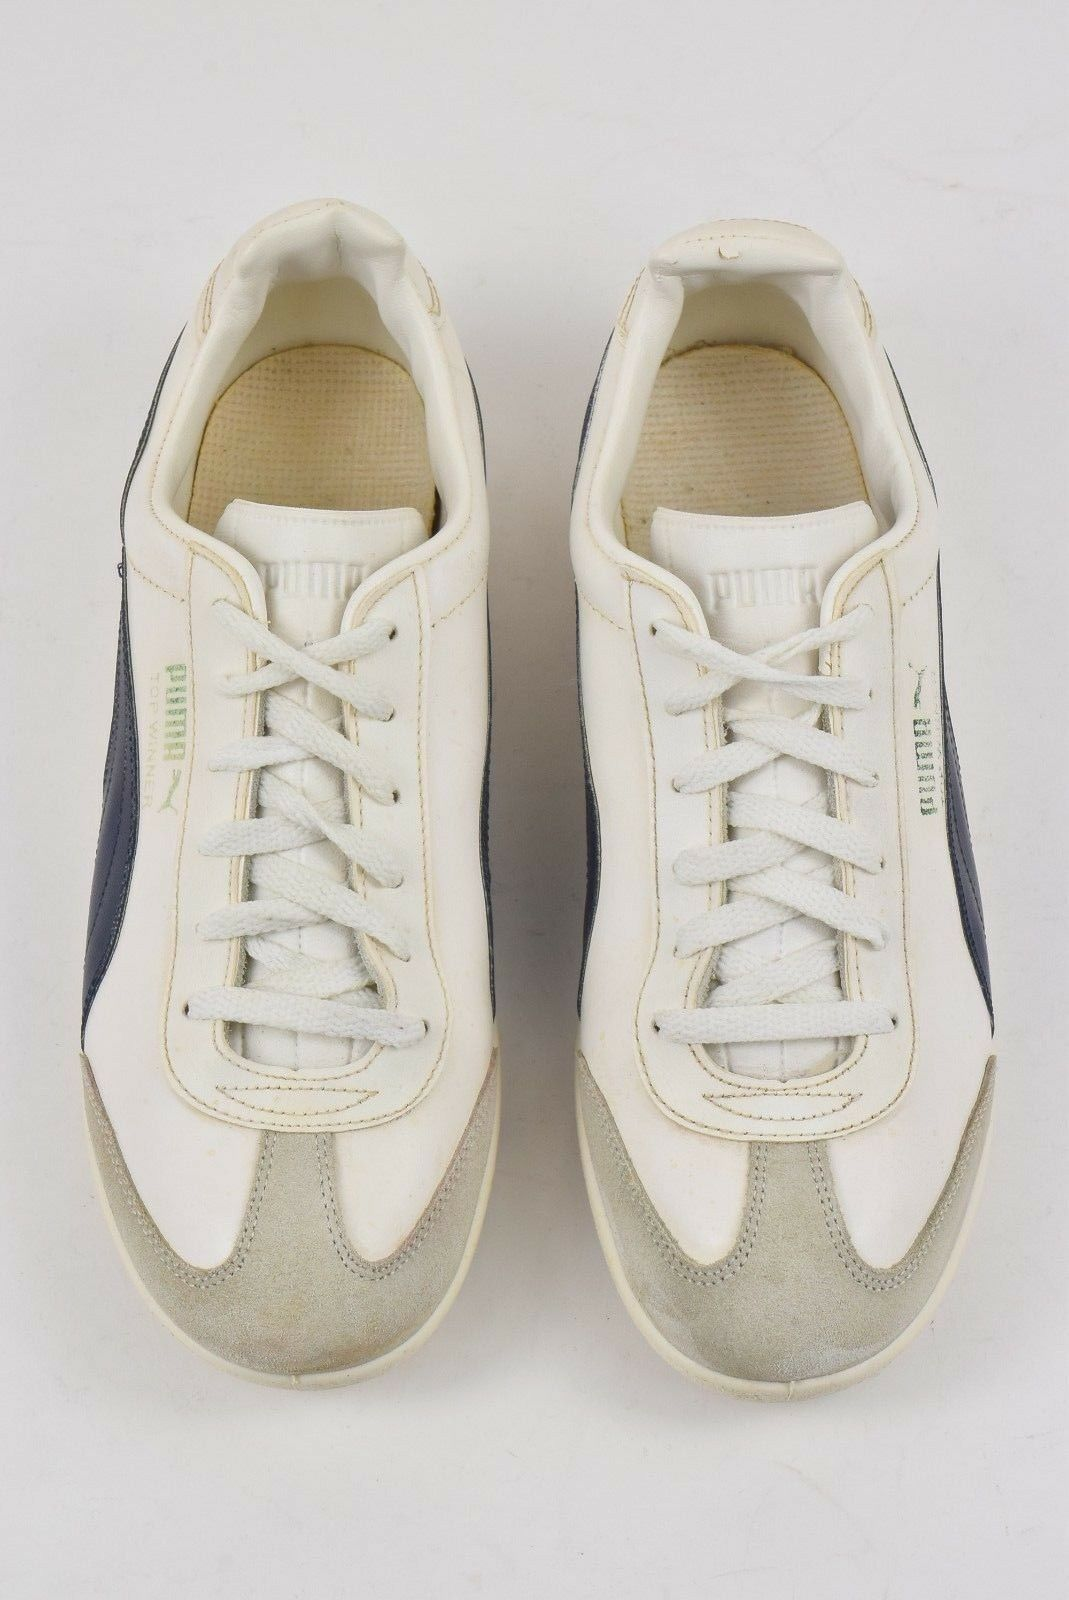 Puma Trainers Top Winner 1980 Vintage Trainers Puma Schuhes Made in  UK 6 09d7c8